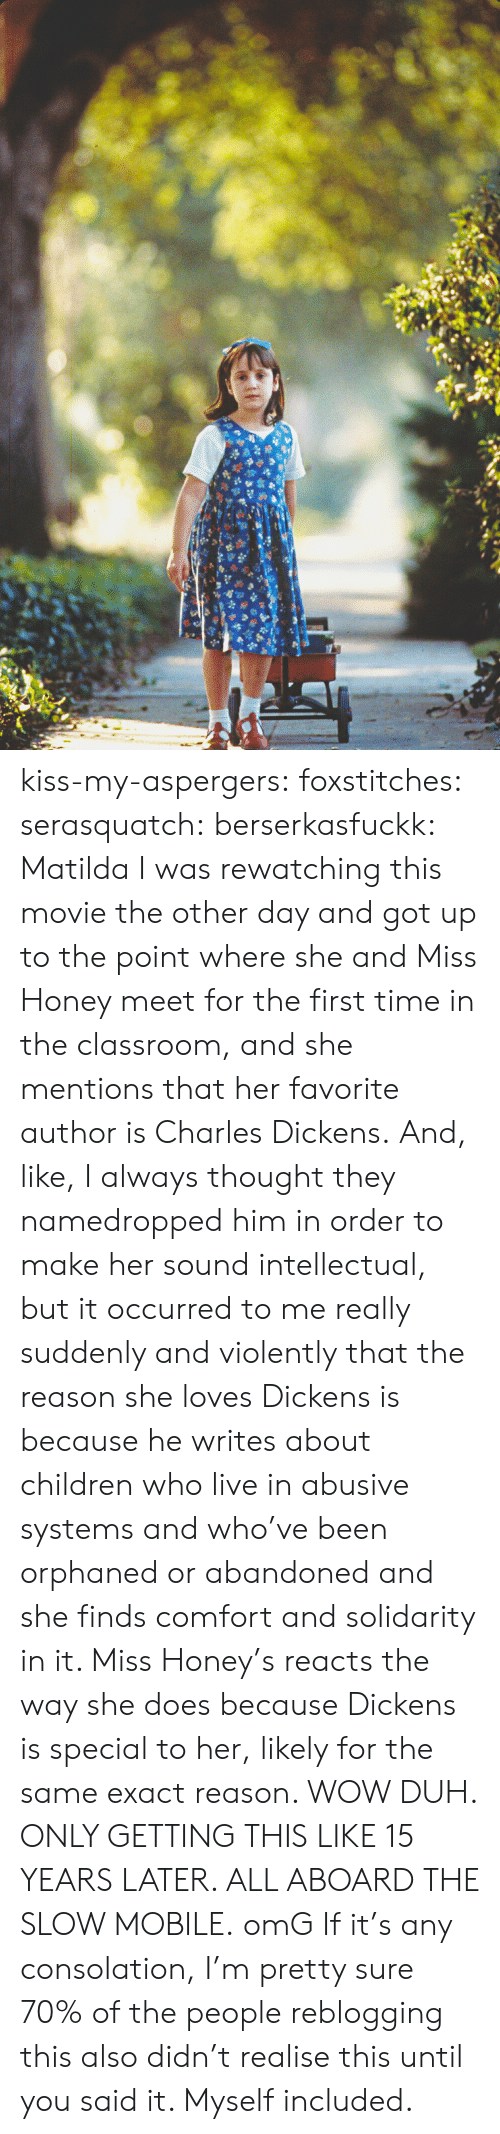 duh: kiss-my-aspergers:  foxstitches:  serasquatch:  berserkasfuckk:  Matilda  I was rewatching this movie the other day and got up to the point where she and Miss Honey meet for the first time in the classroom, and she mentions that her favorite author is Charles Dickens. And, like, I always thought they namedropped him in order to make her sound intellectual, but it occurred to me really suddenly and violently that the reason she loves Dickens is because he writes about children who live in abusive systems and who've been orphaned or abandoned and she finds comfort and solidarity in it. Miss Honey's reacts the way she does because Dickens is special to her, likely for the same exact reason. WOW DUH. ONLY GETTING THIS LIKE 15 YEARS LATER. ALL ABOARD THE SLOW MOBILE.  omG  If it's any consolation, I'm pretty sure 70% of the people reblogging this also didn't realise this until you said it. Myself included.